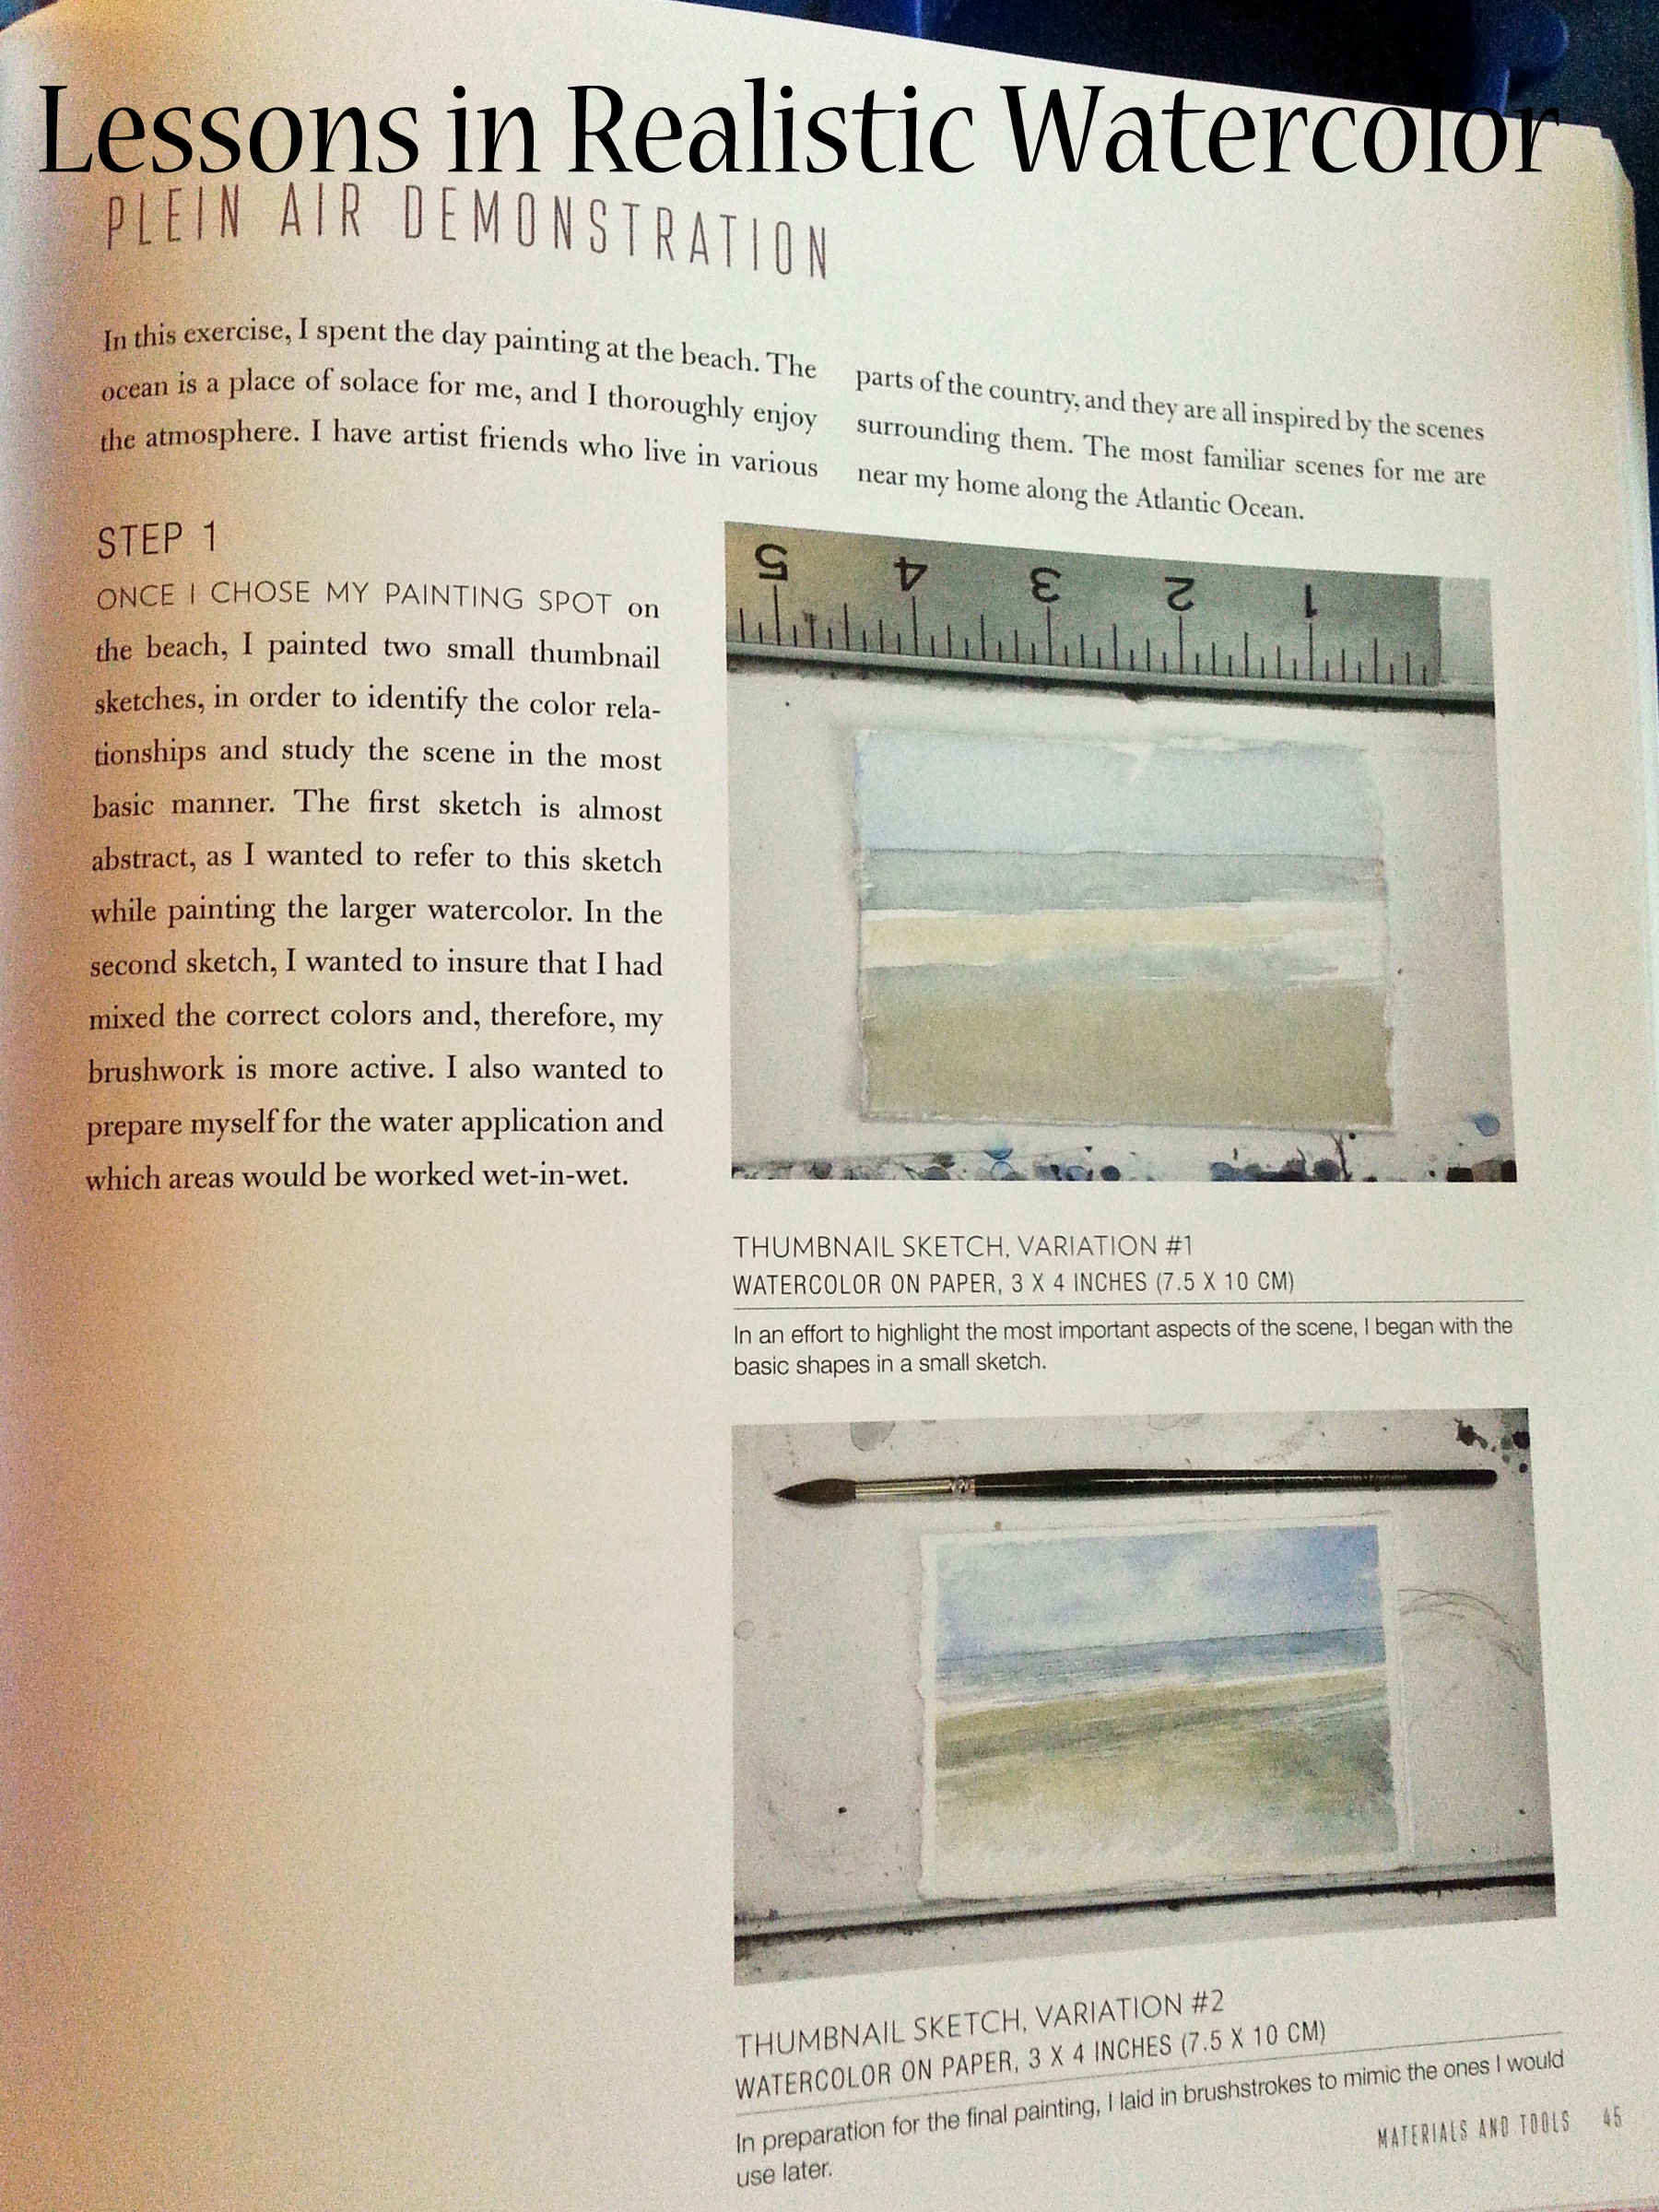 Lessons in Realistic Watercolor by Mario Robinson book review   Book Addicts